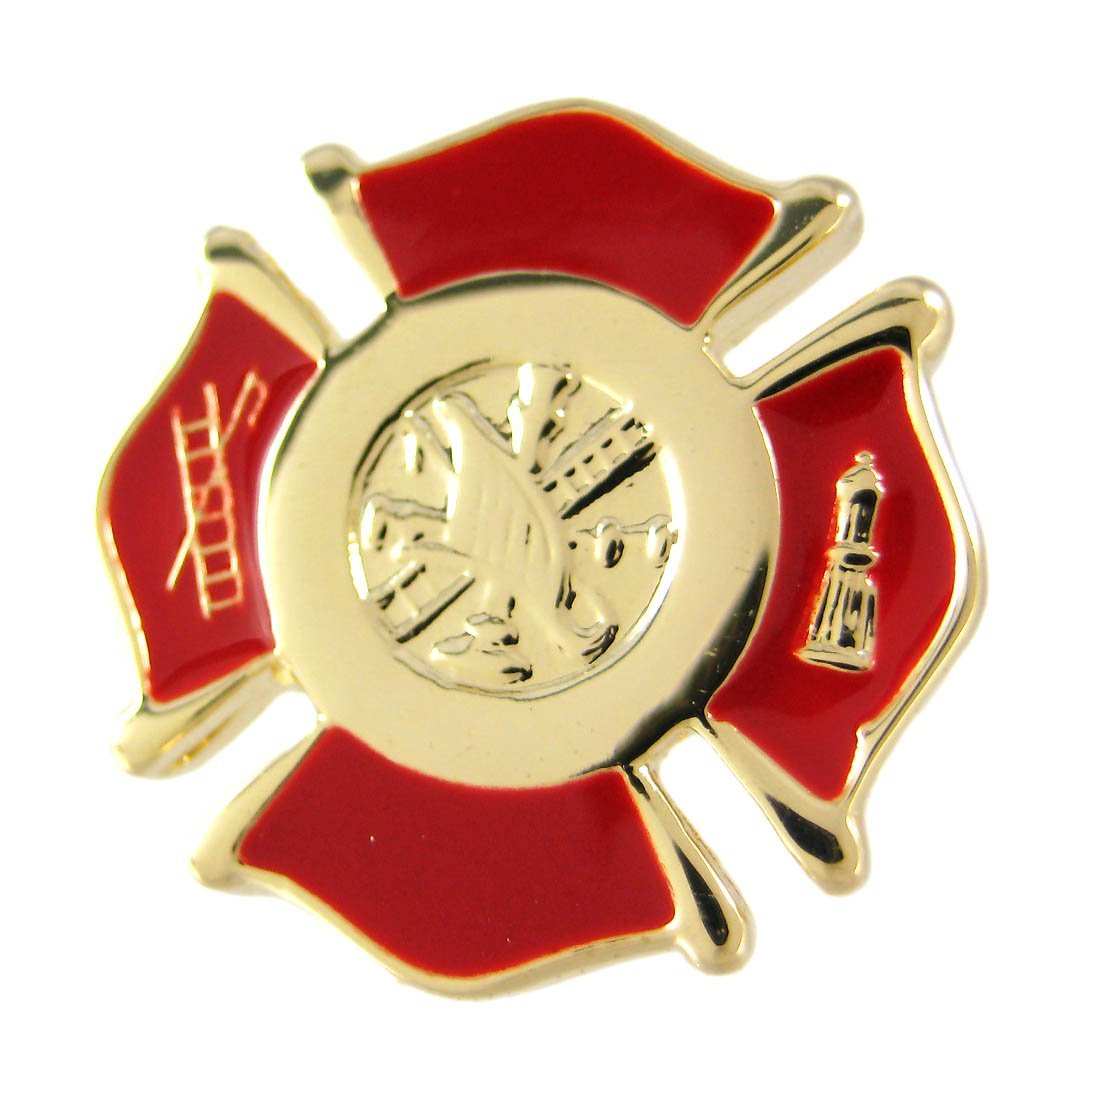 Gold Plated Firefighter Cufflinks Fire - image 1 of 4